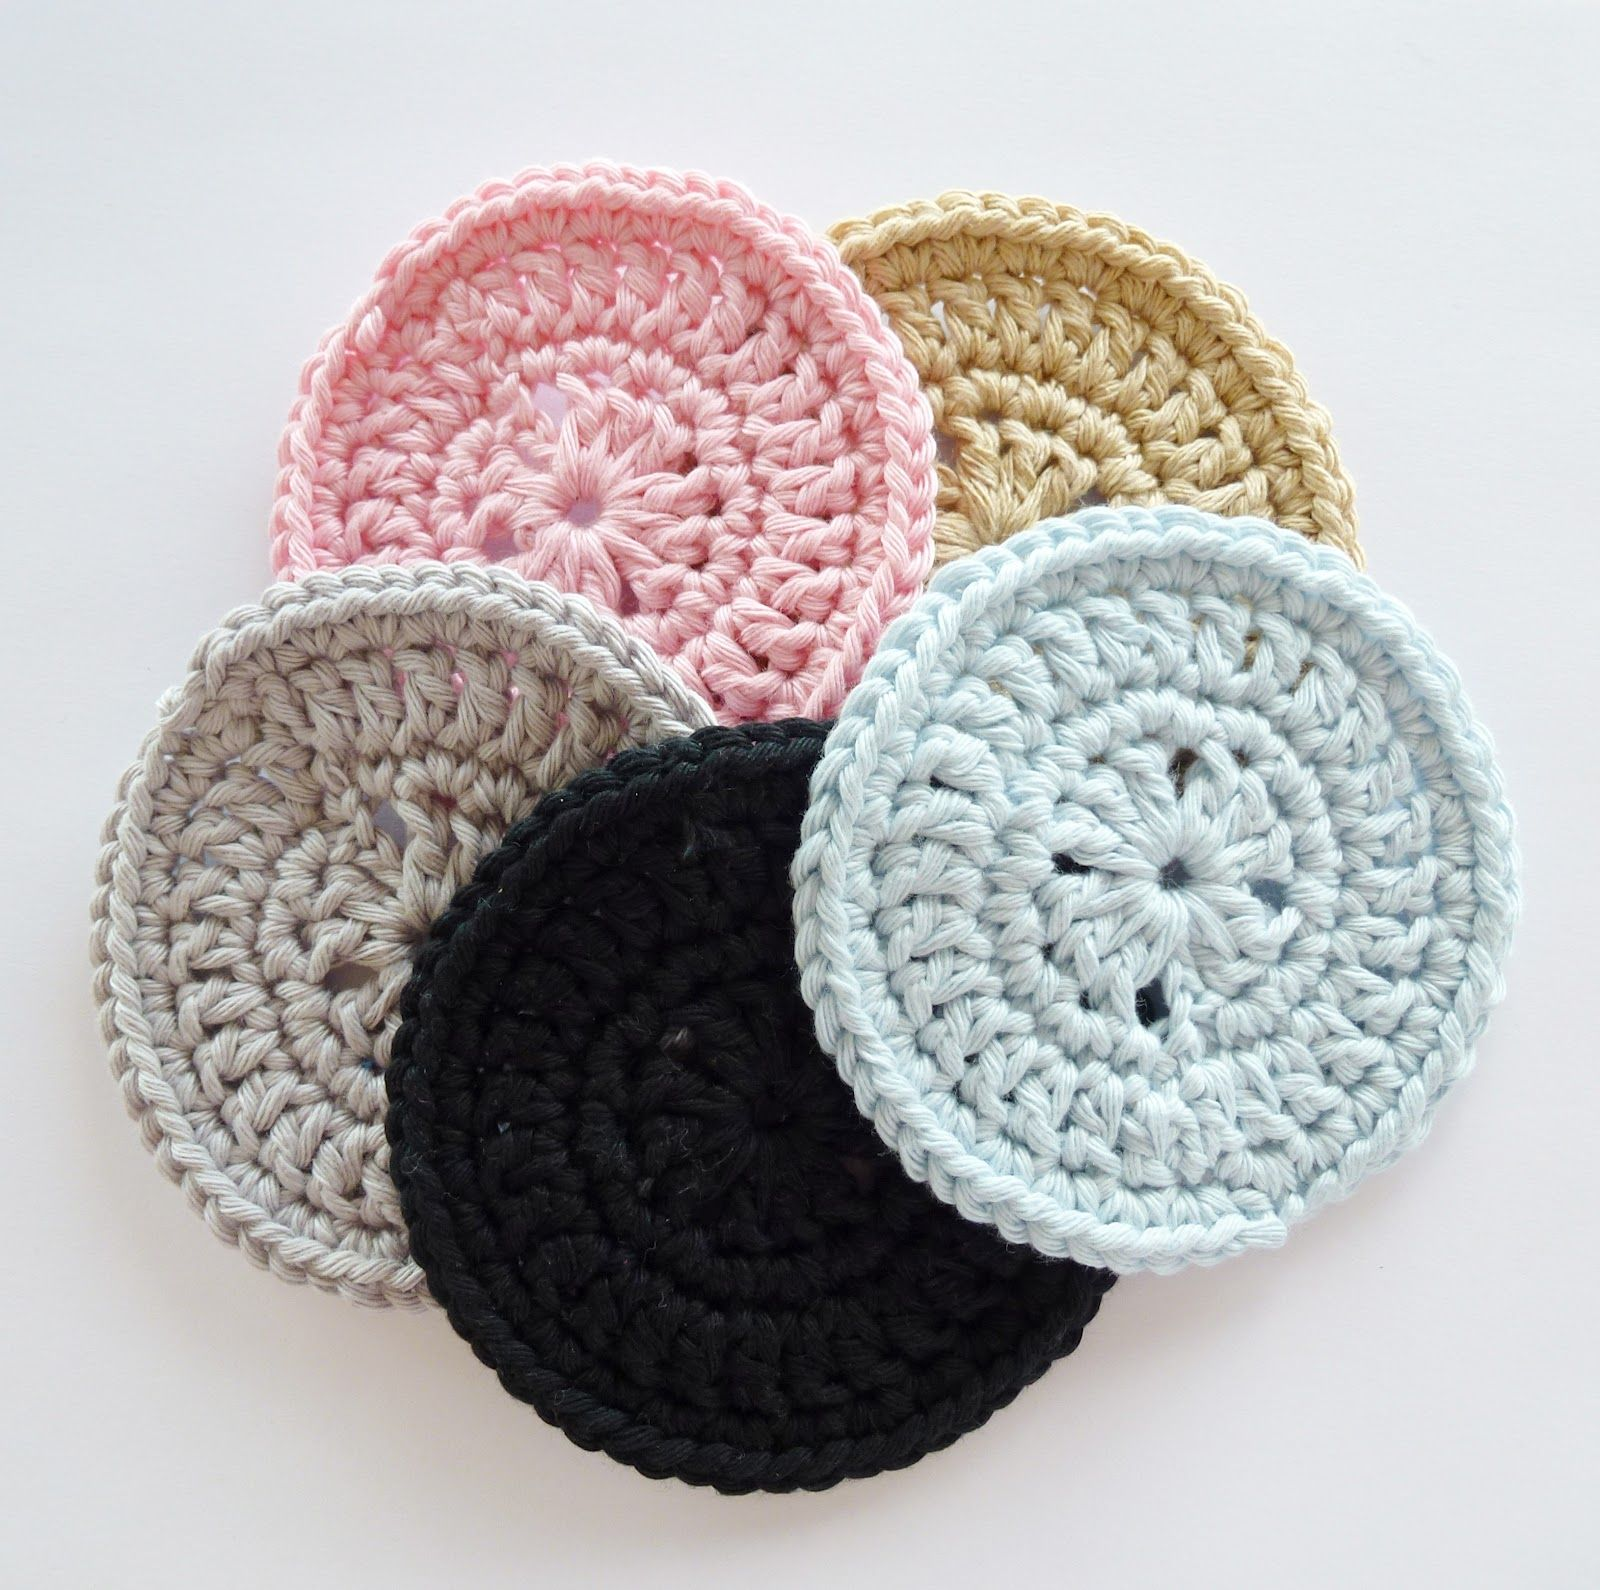 Crochet coasters free pattern craft ideas pinterest crochet coasters free pattern bankloansurffo Images